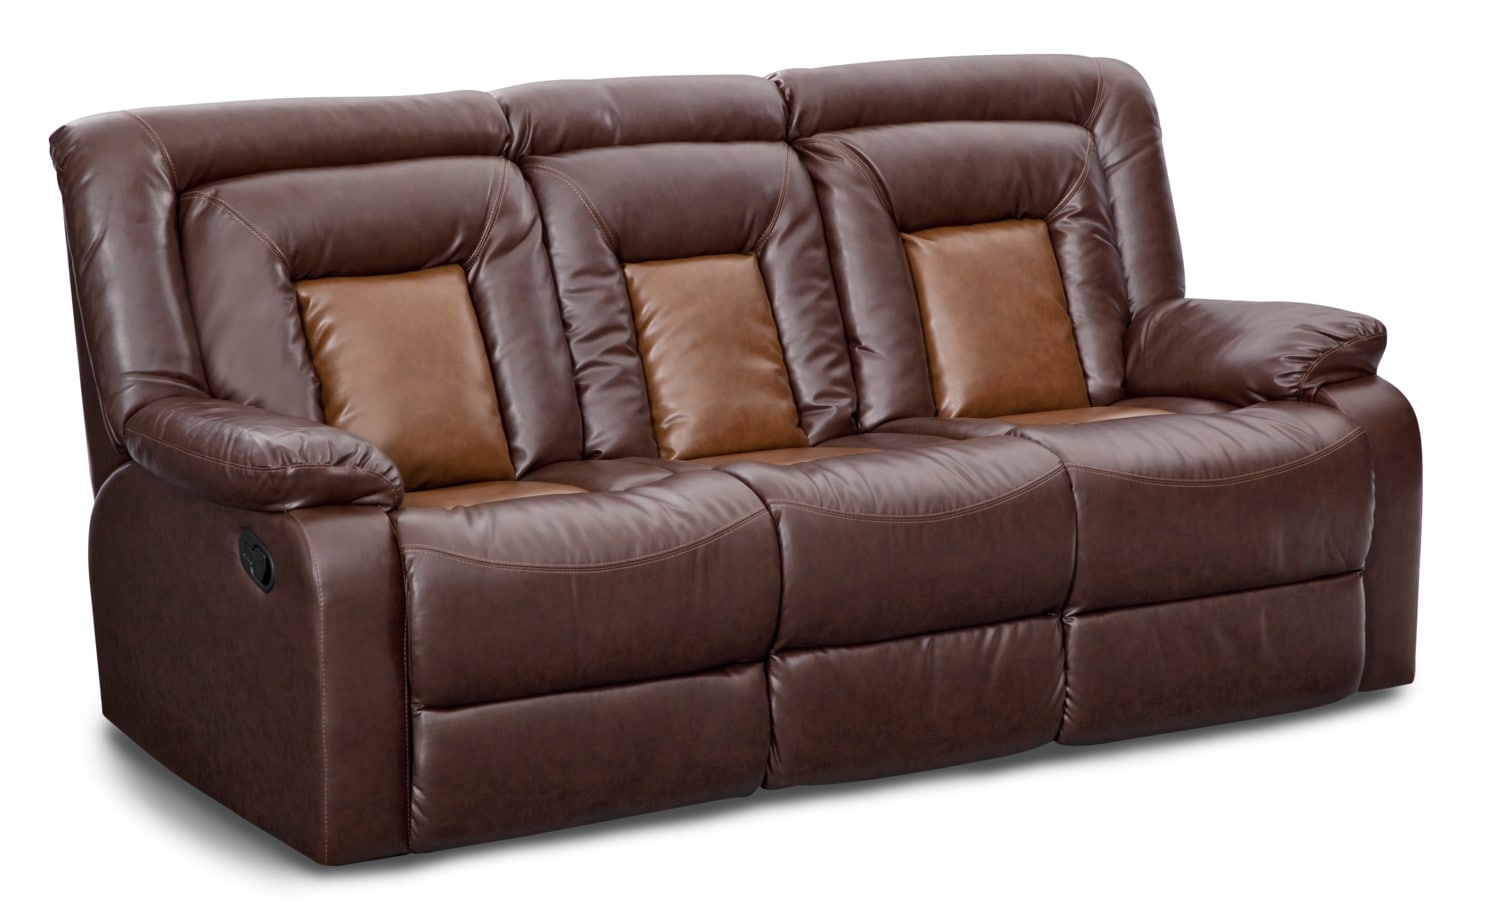 Dual reclining sofas reclining sofas manual recliner couches thesofa Loveseats with console